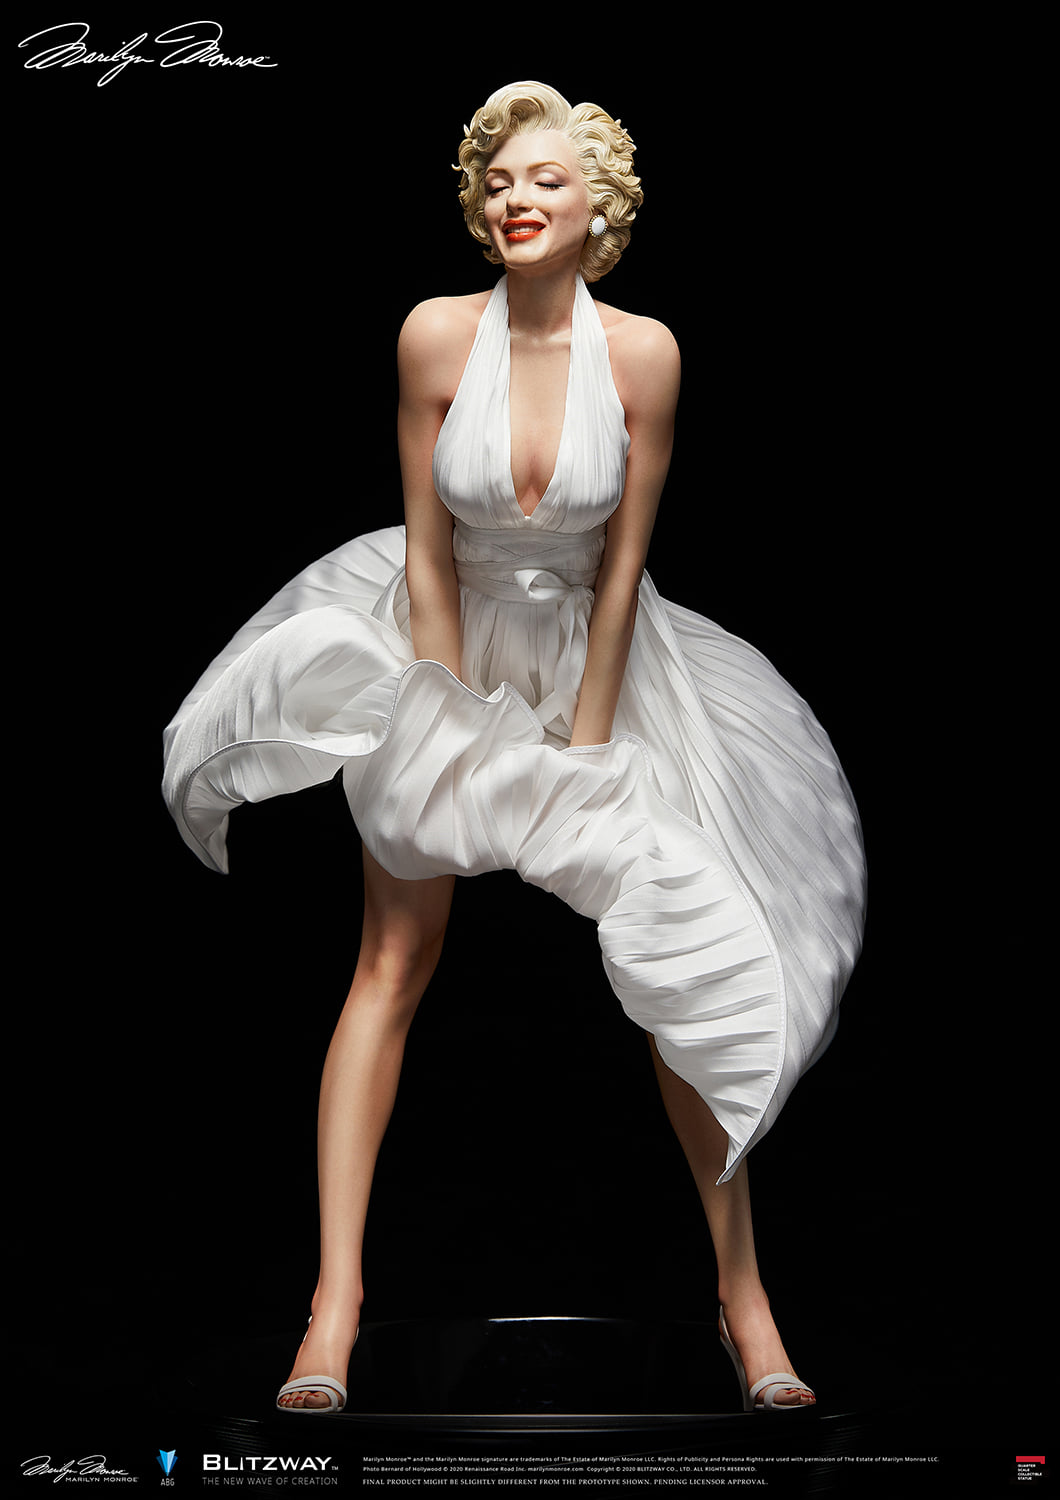 Pre-Order Blitzway Marilyn Monroe 1/4 Superb Scale Statue